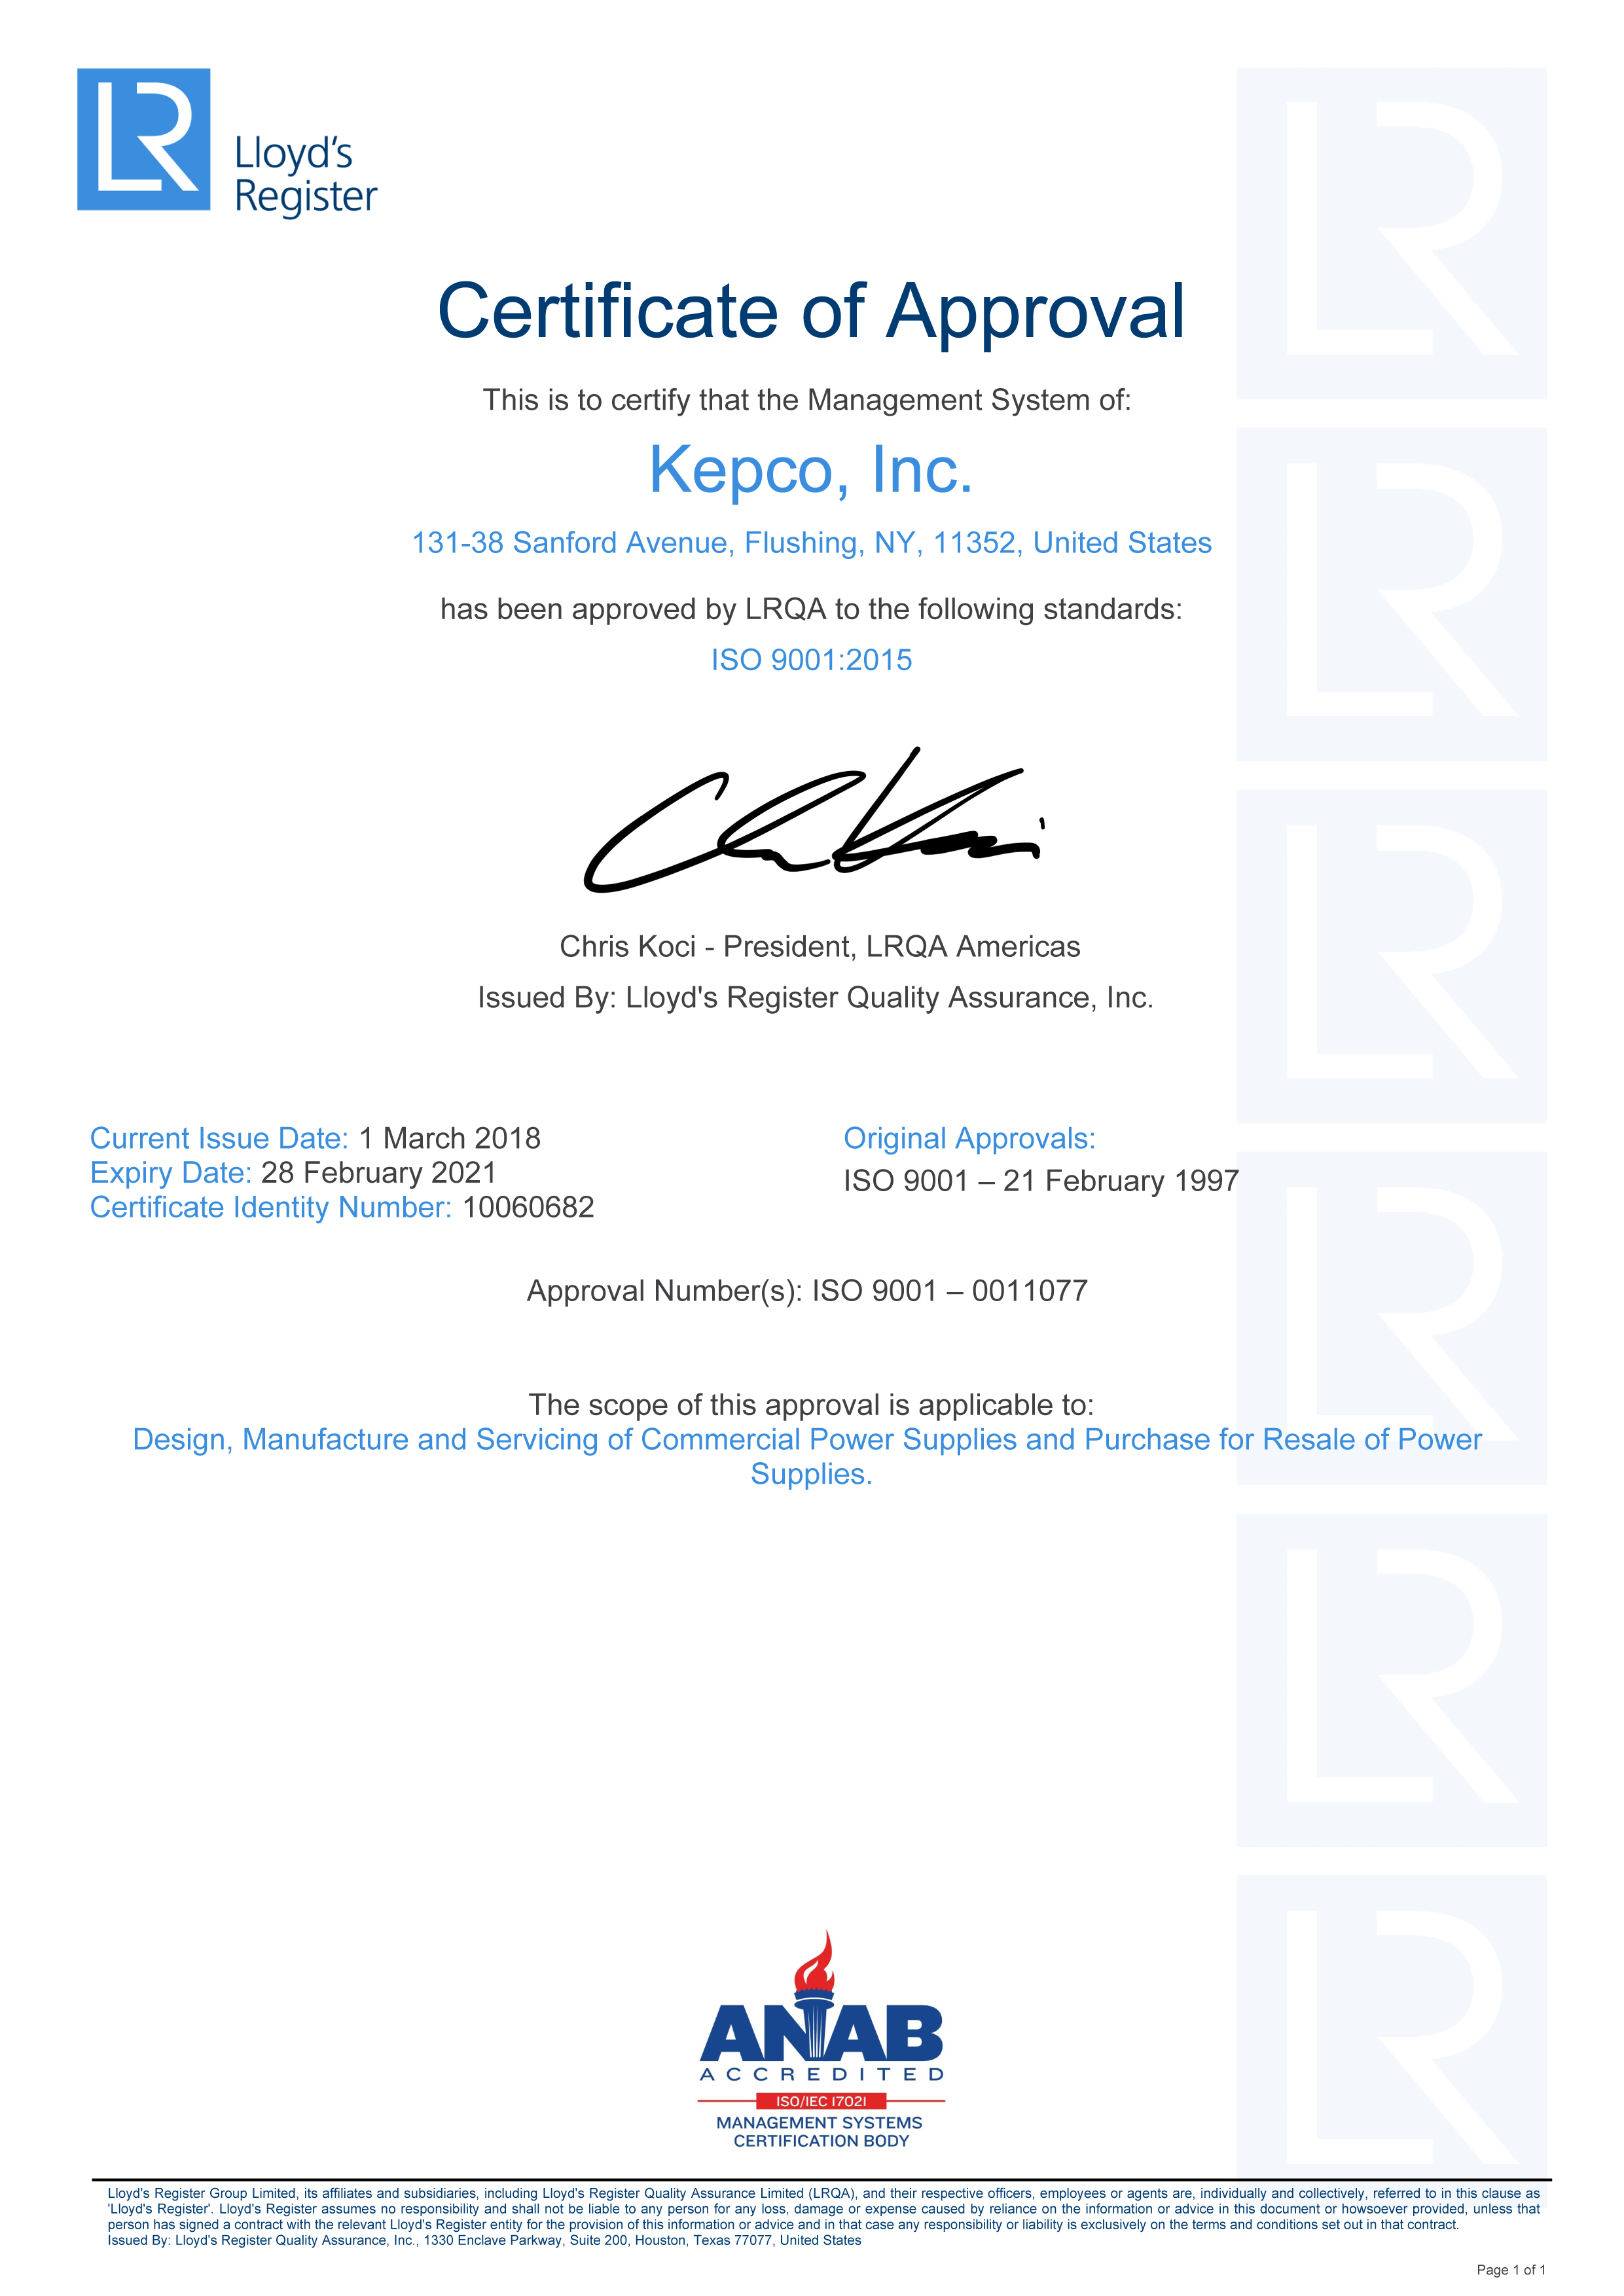 Kepco ISO 9001:2015 Certificate